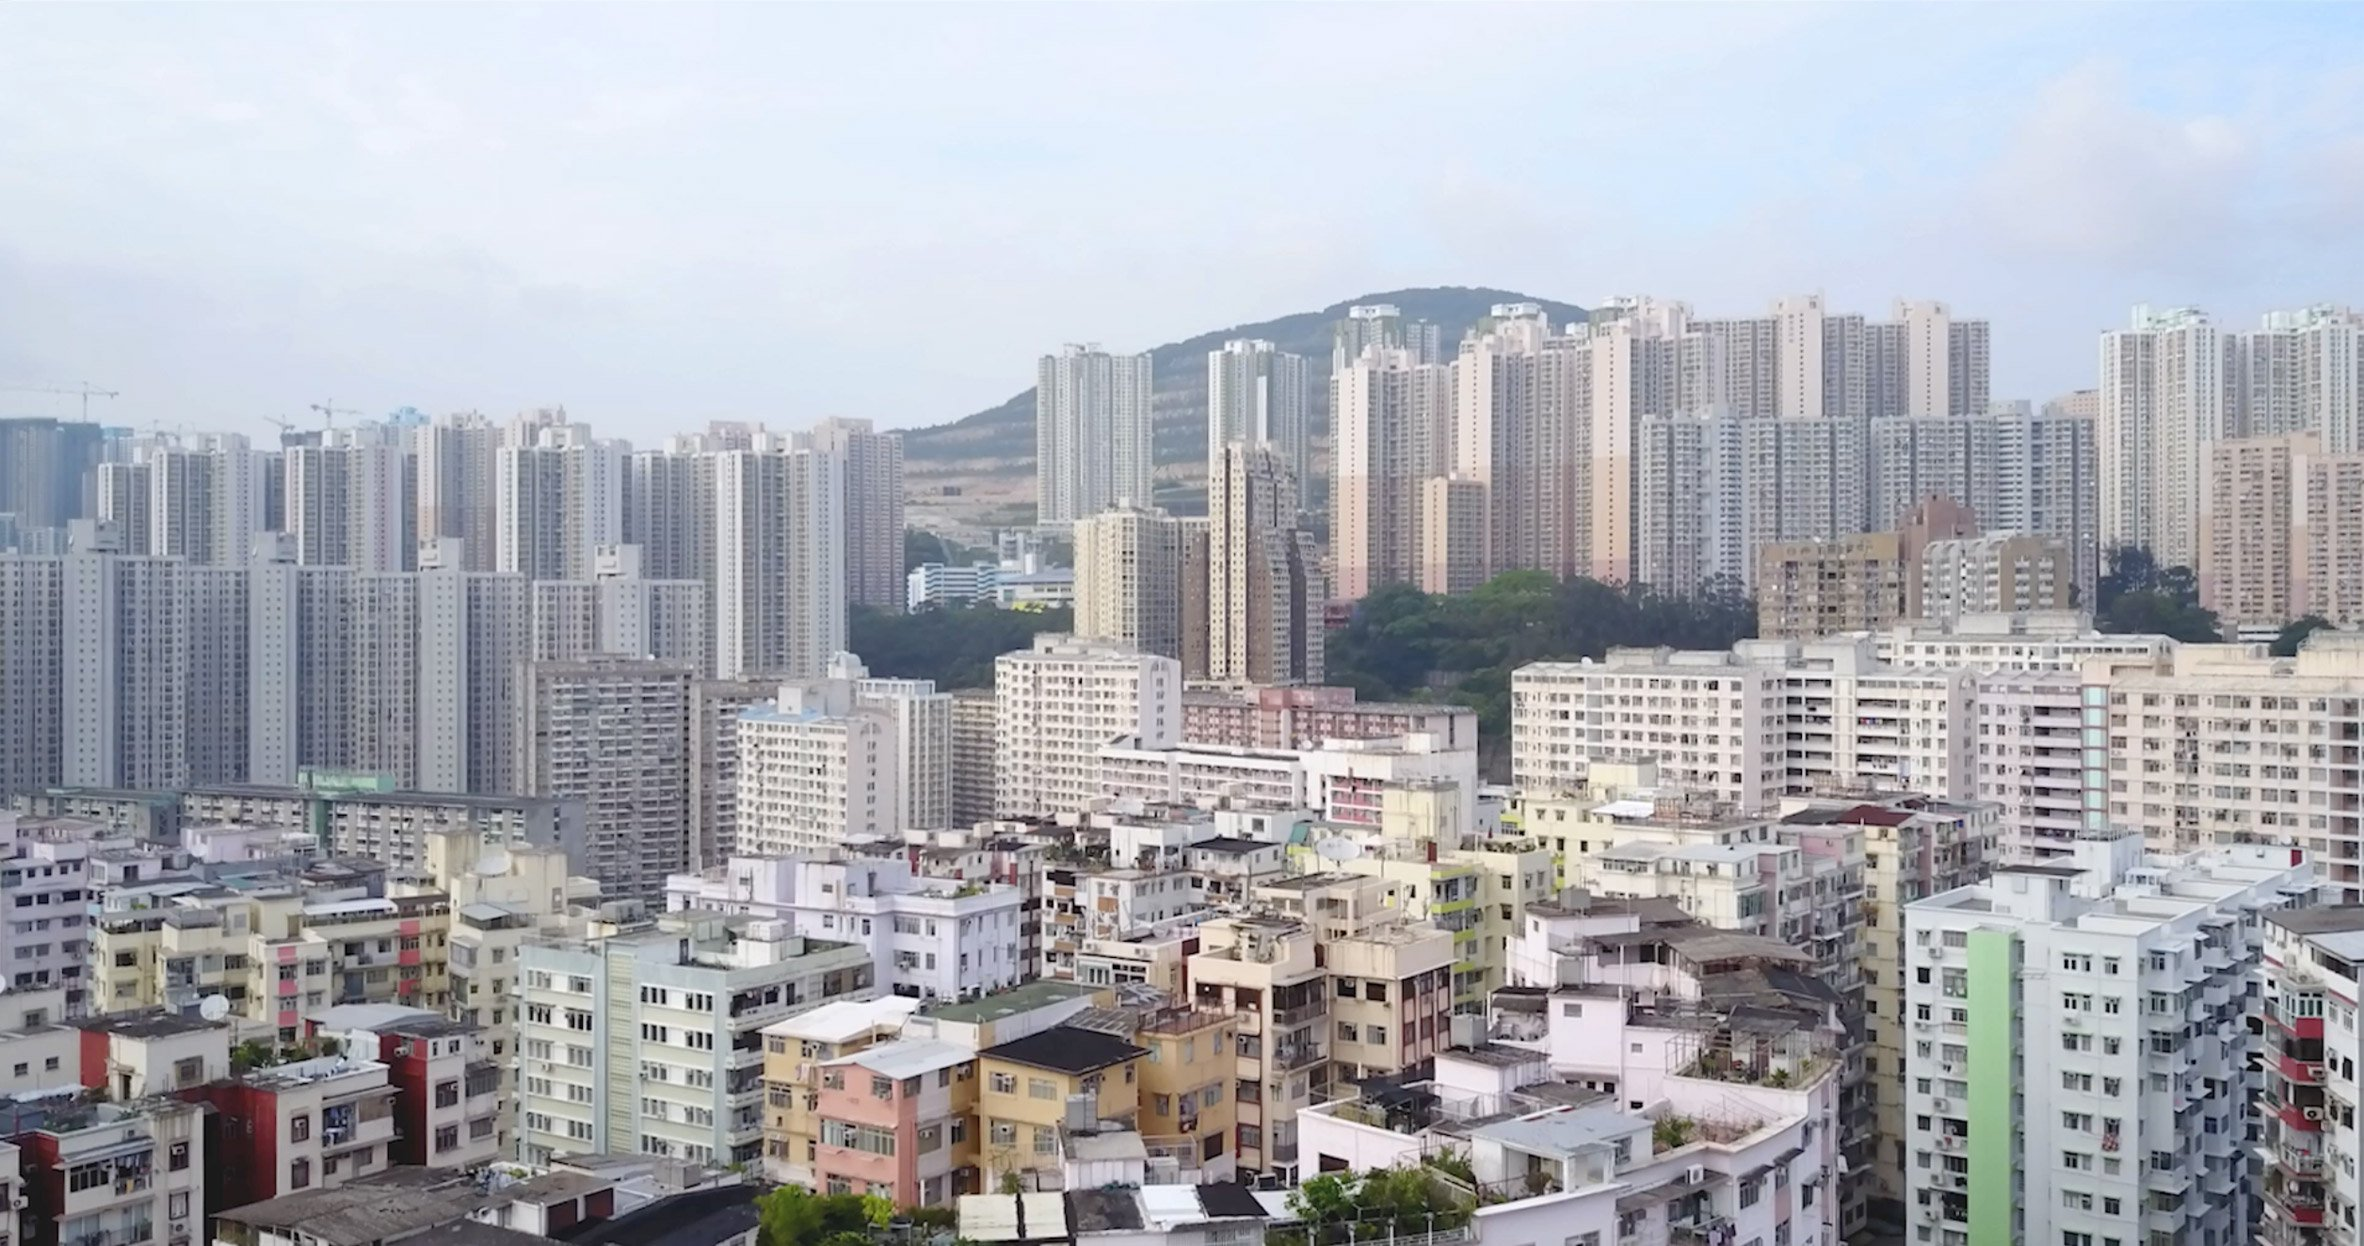 Hong Kong's densely packed high-rises captured from above in new drone movie